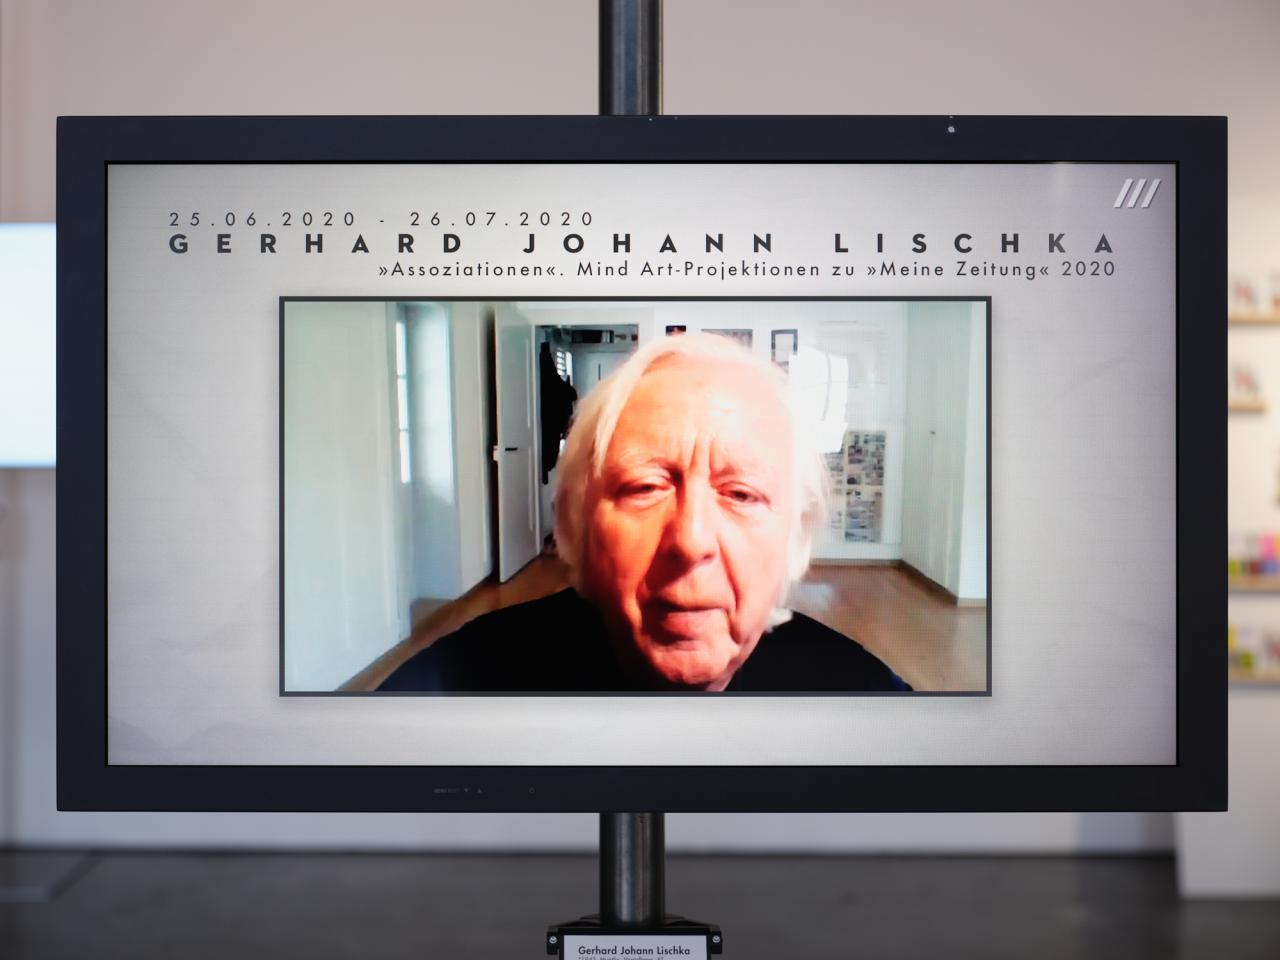 A screen can be seen on which the face of an old man plays. Above the man's head is the name Gerhard Johann Lischka.